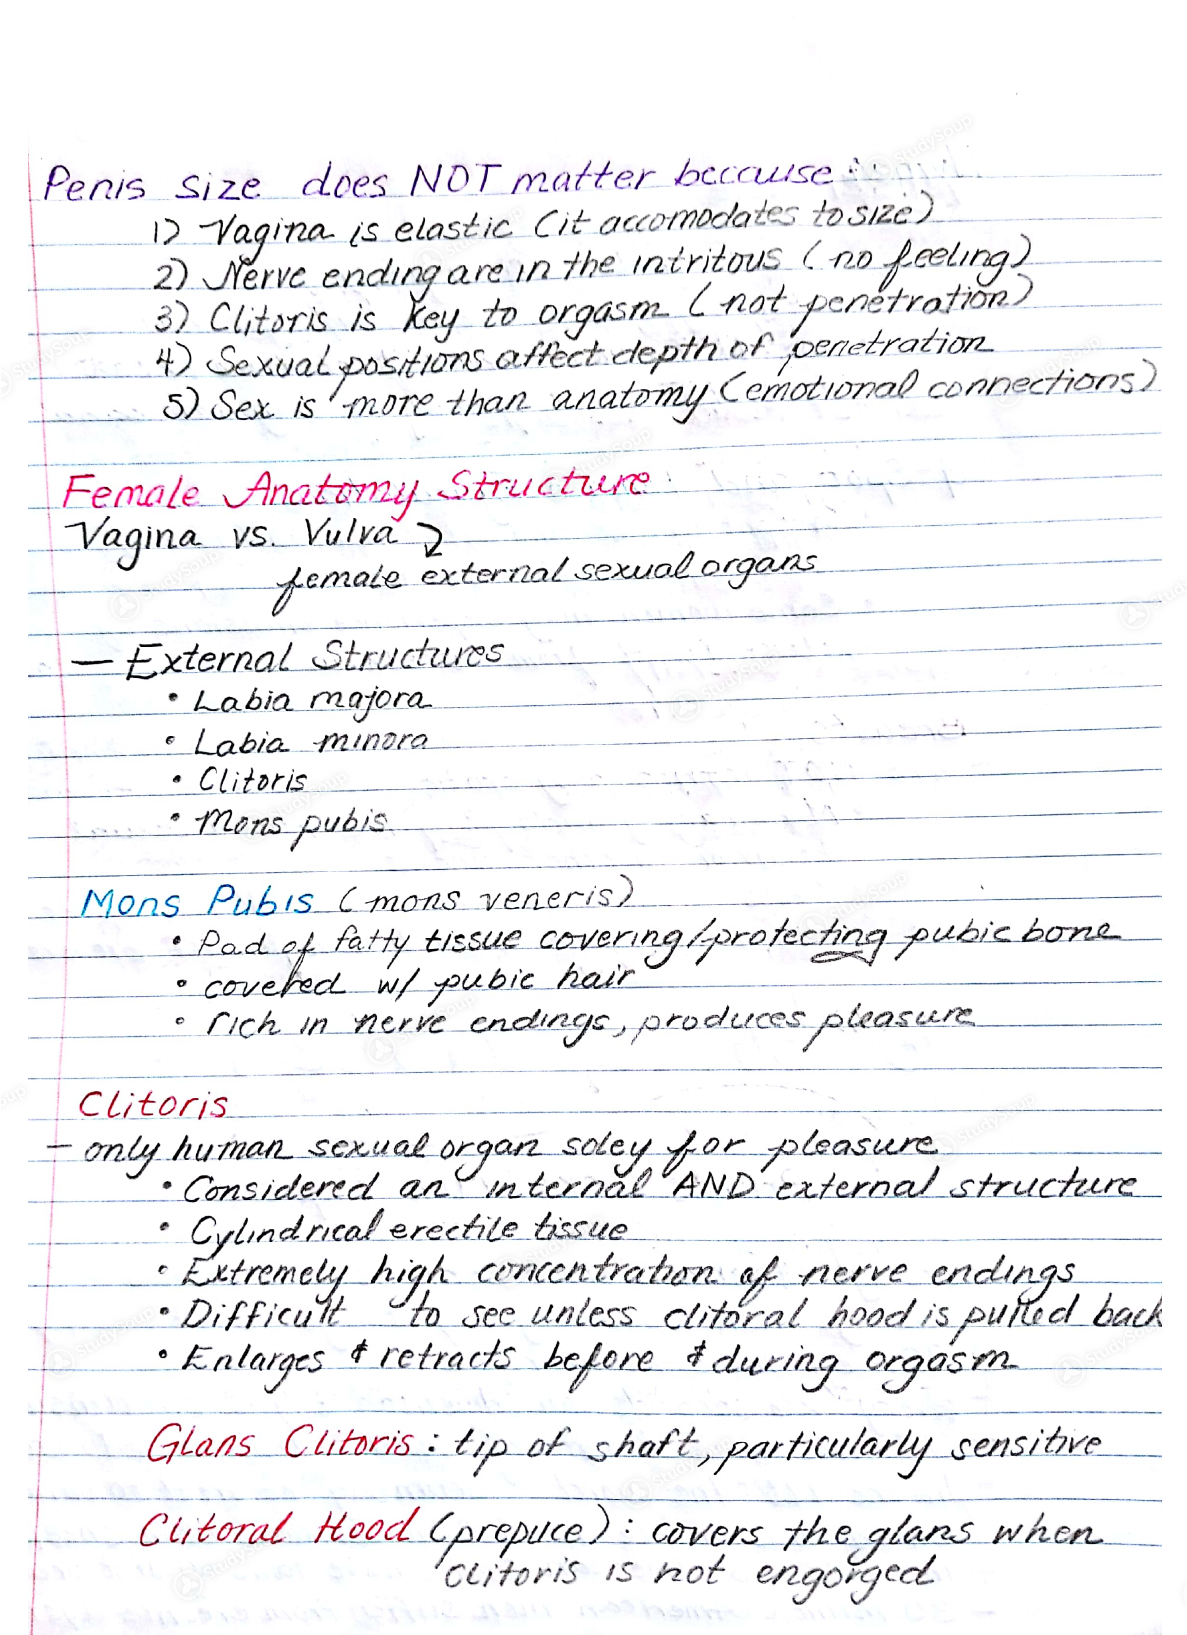 UF - AFS 2301 - Class Notes - Week 5 | StudySoup